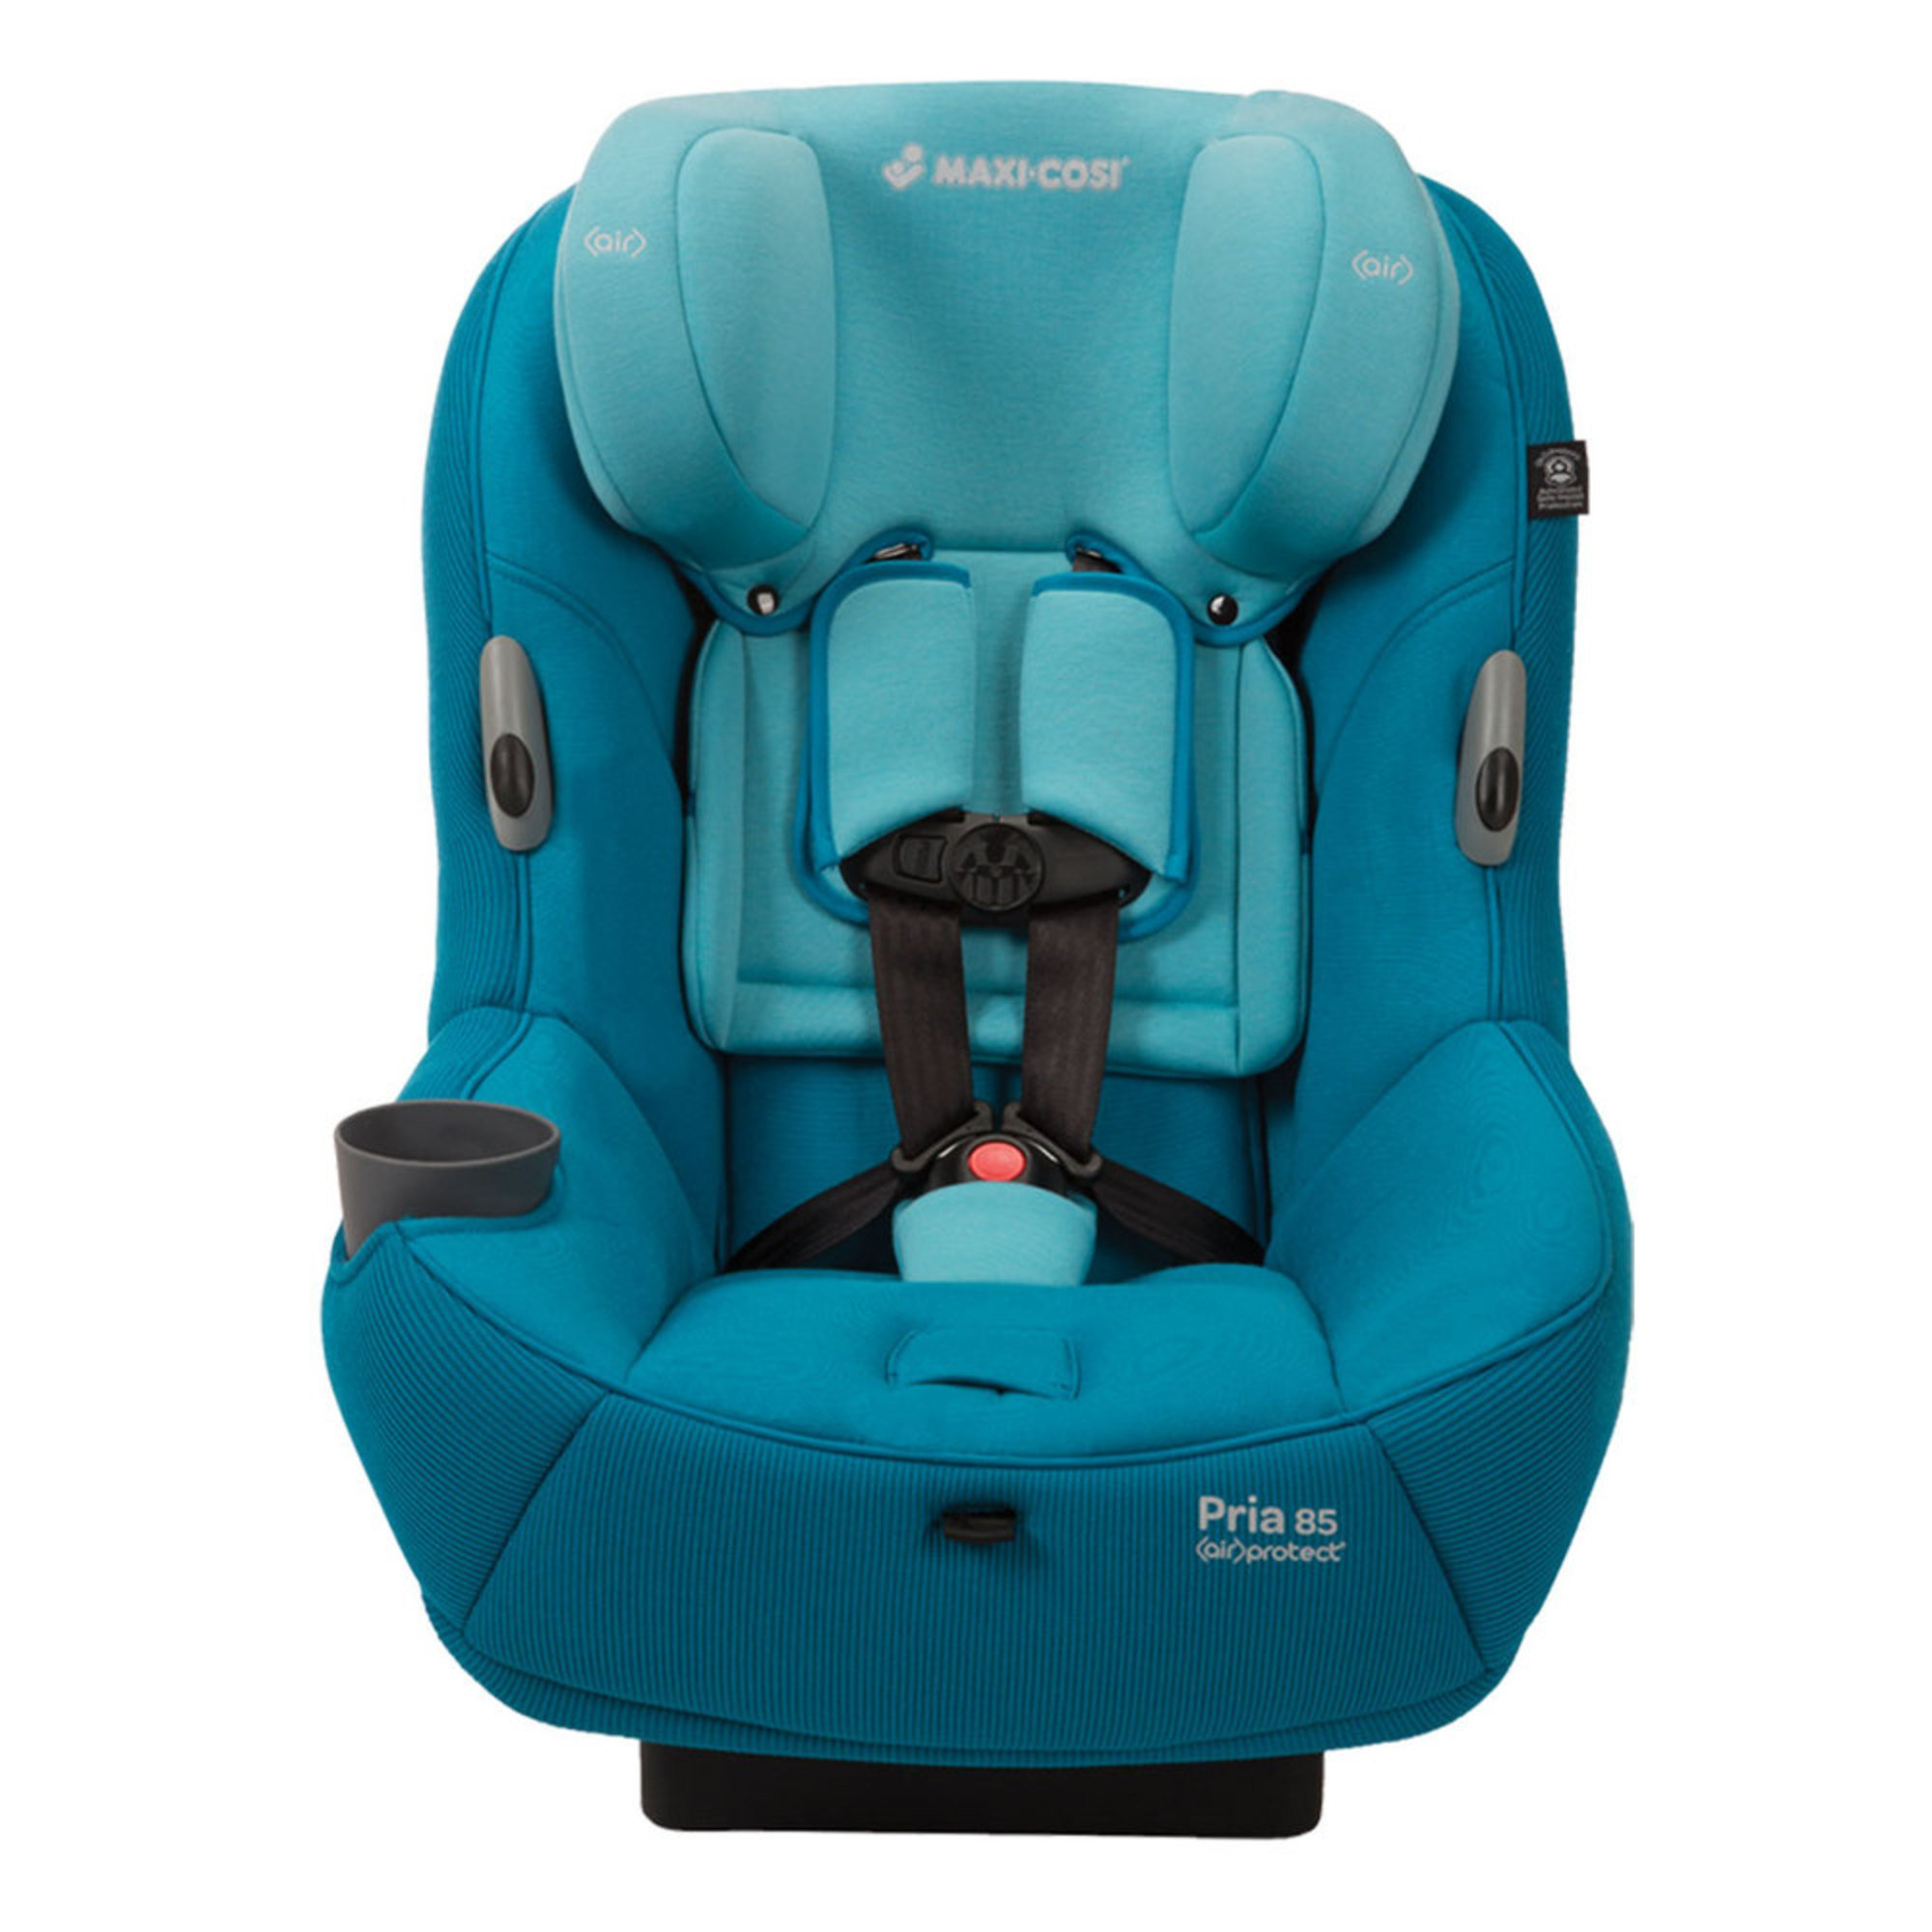 Maxi Cosi Pria 85 Special Edition Ribble Knit Convertible